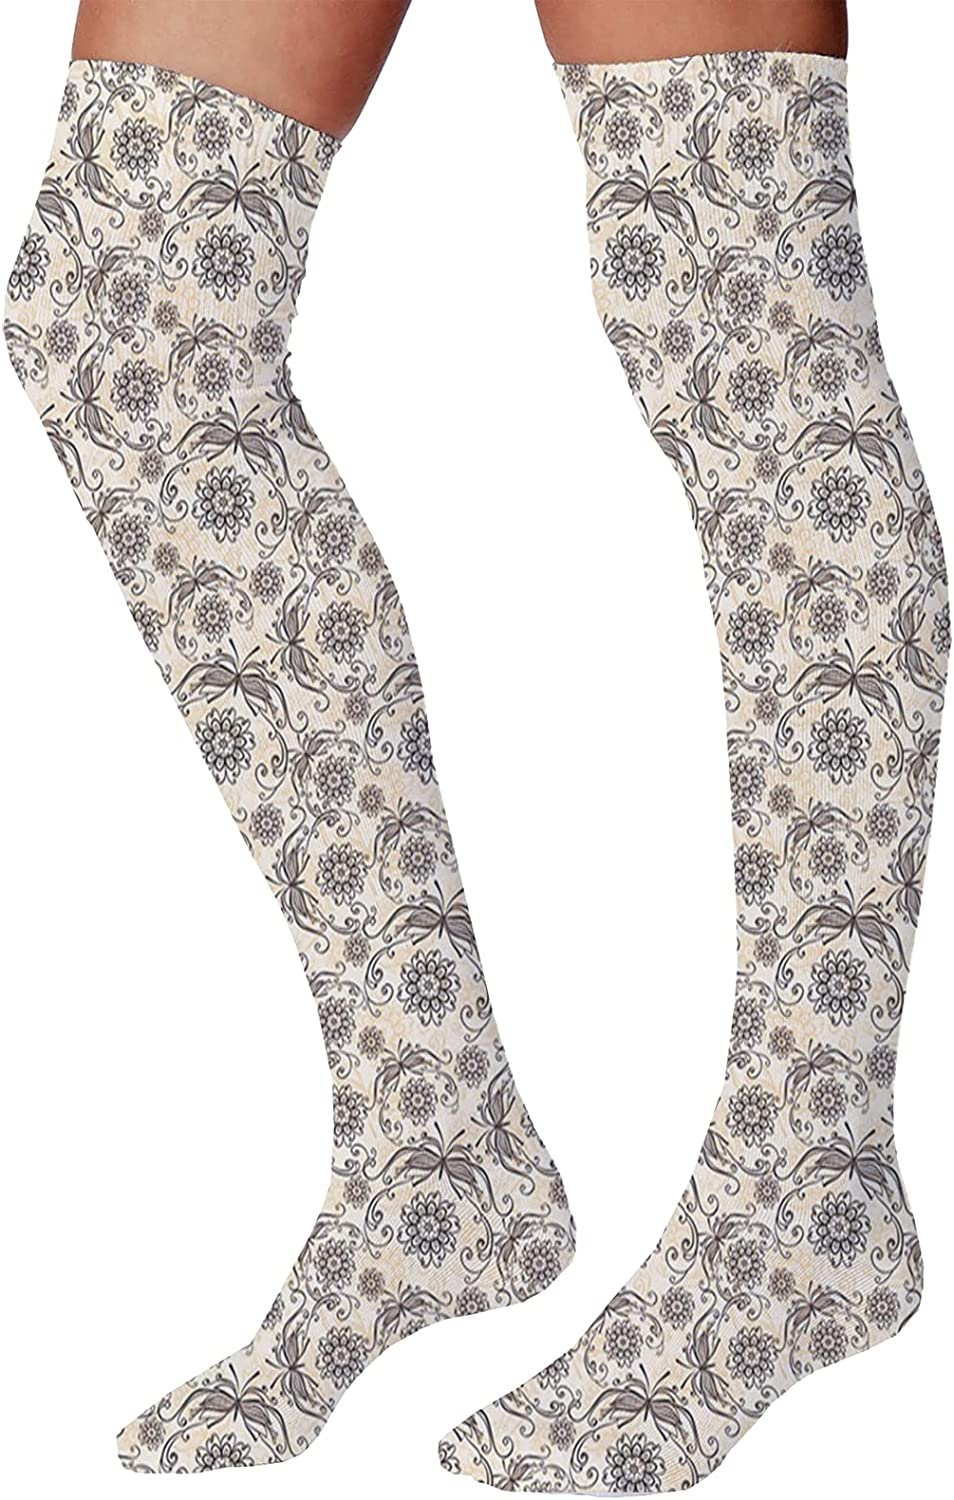 Men's and Women's Fun Socks,Natural View of Hallstatt in Austria Mountains Forest Town Houses Clear Sky